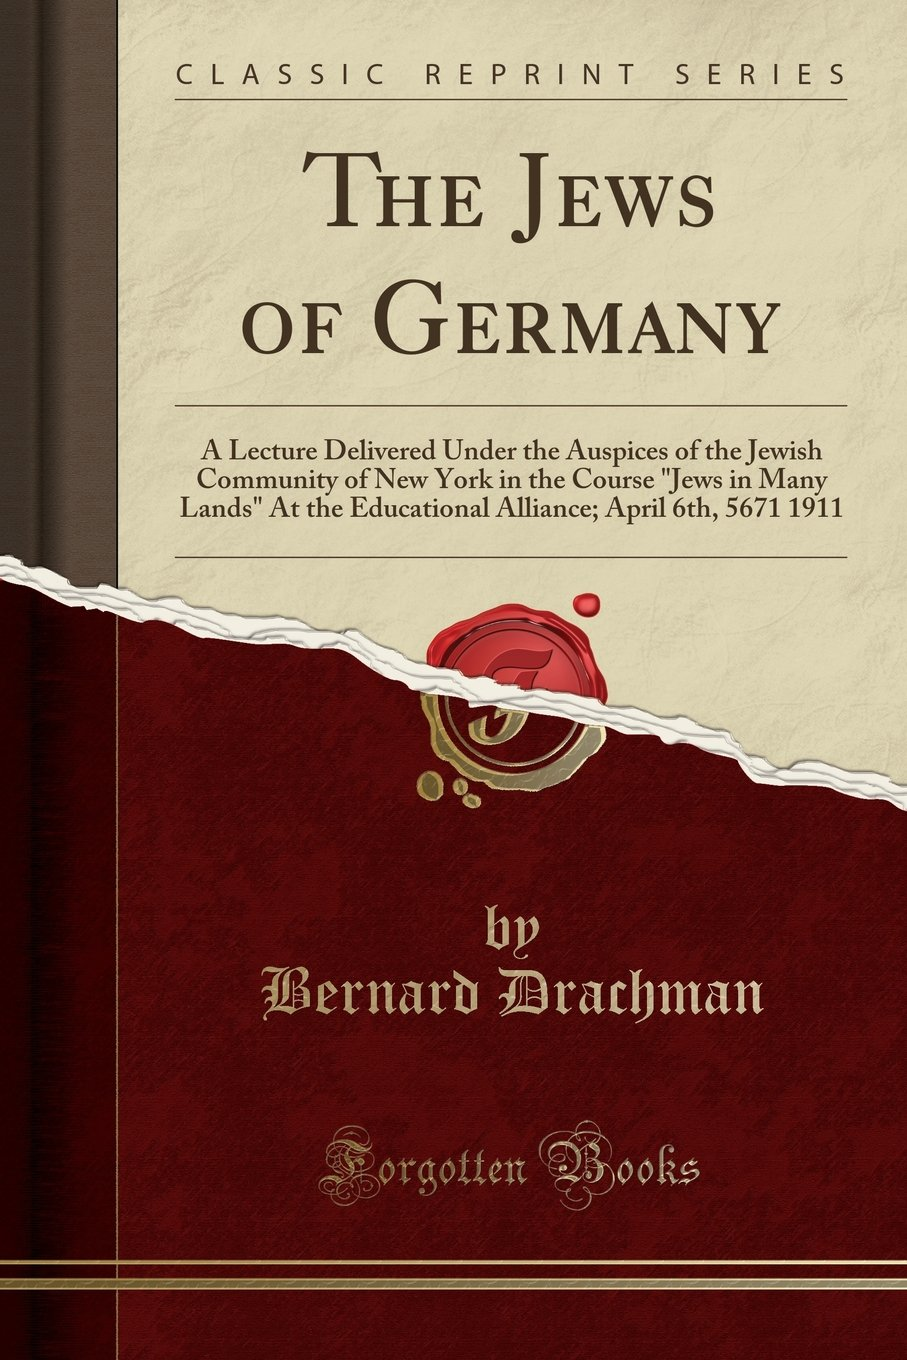 Read Online The Jews of Germany: A Lecture Delivered Under the Auspices of the Jewish Community of New York in the Course Jews in Many Lands At the Educational Alliance; April 6th, 5671 1911 (Classic Reprint) pdf